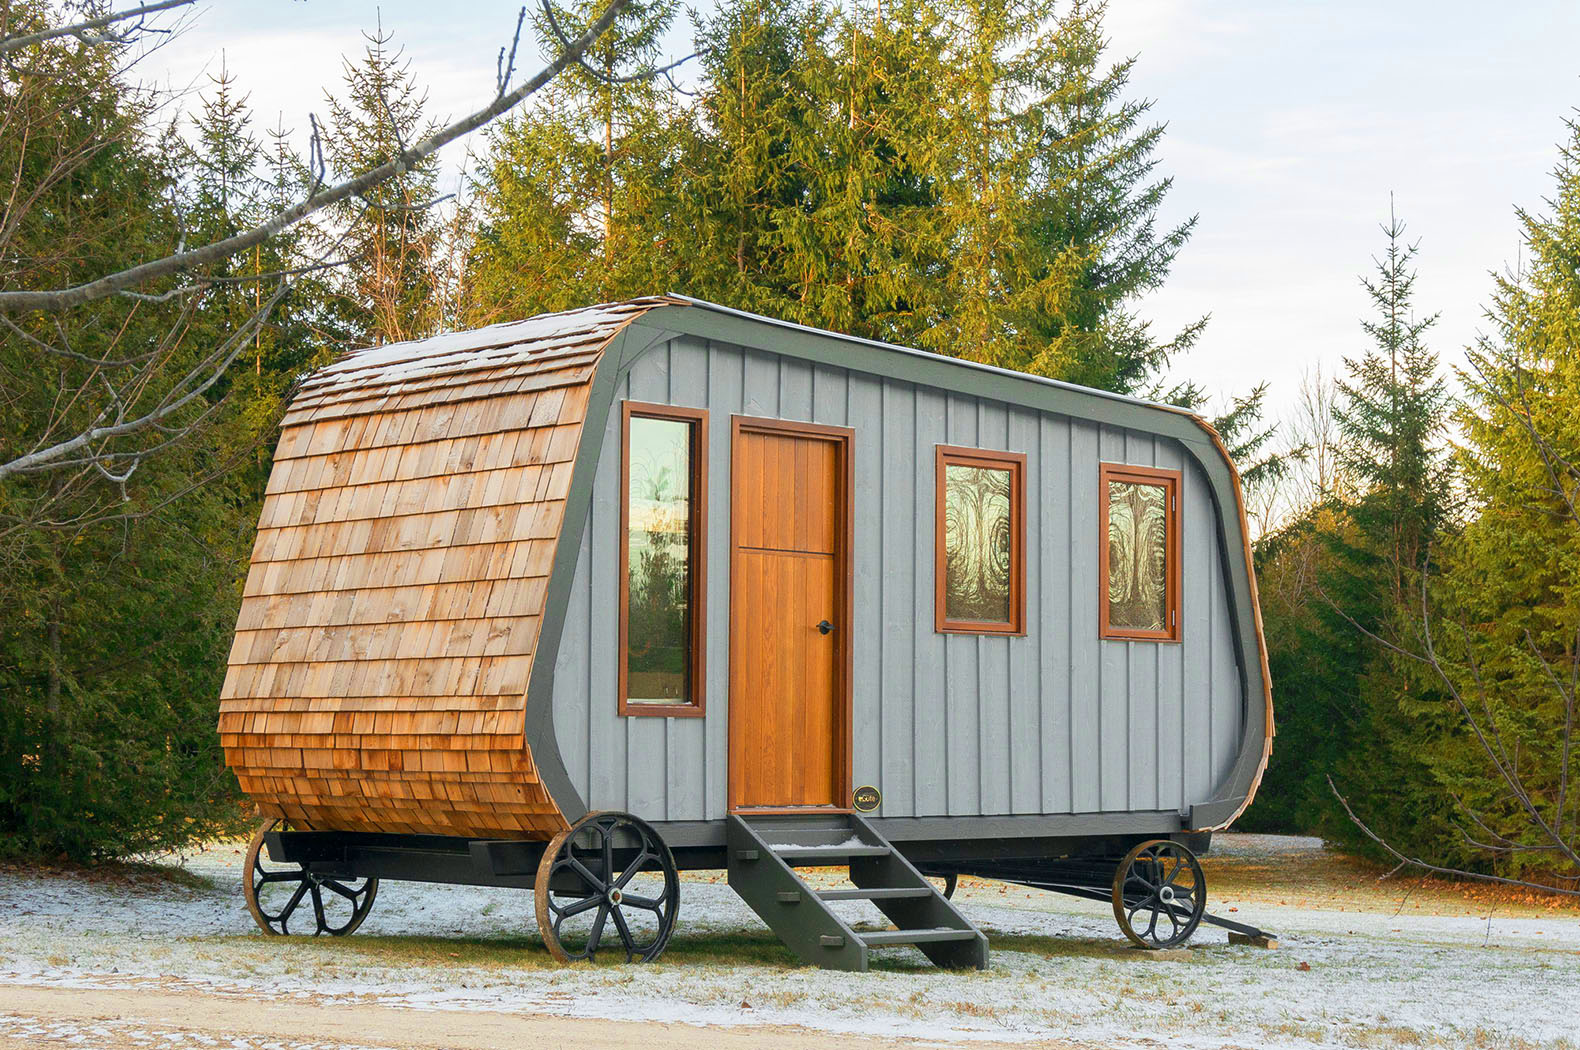 Merveilleux Tiny Collingwood Shepherd Hut On Wheels Is Inspired By 19th Century Mobile  Homes